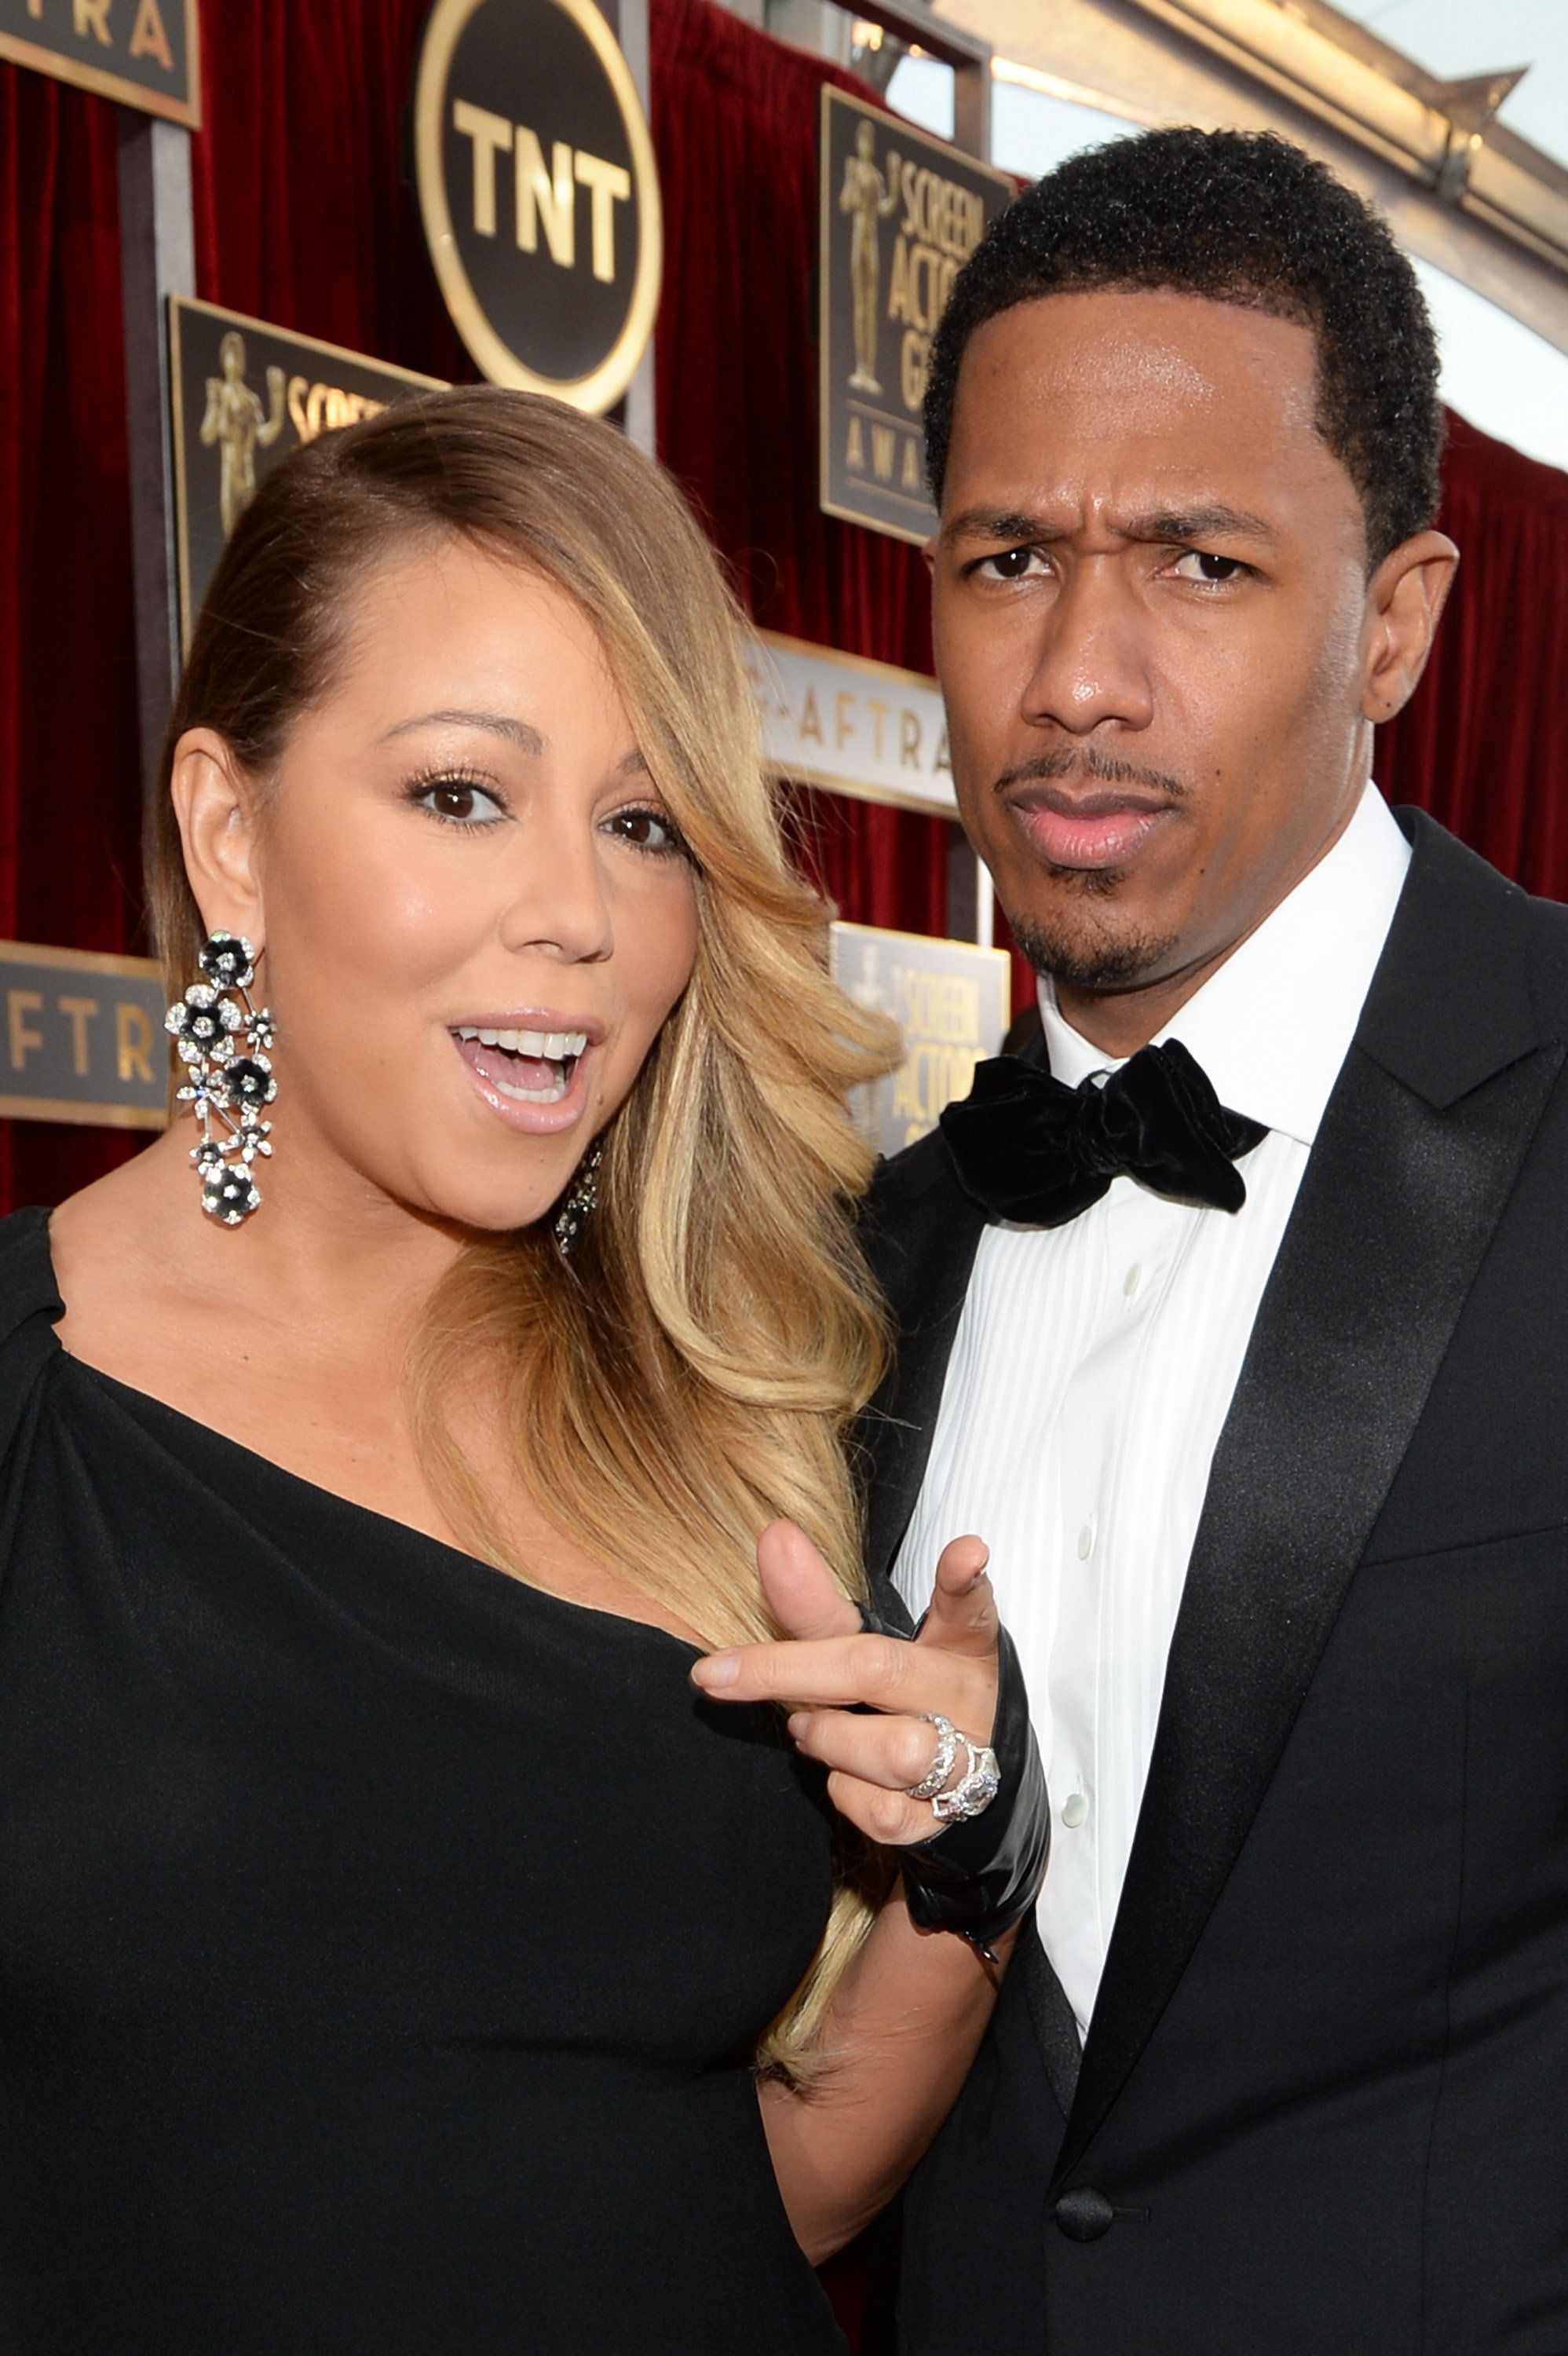 LOS ANGELES, CA - JANUARY 18:  Singer Mariah Carey (L) and TV personality Nick Cannon attend 20th Annual Screen Actors Guild Awards at The Shrine Auditorium on January 18, 2014 in Los Angeles, California.  (Photo by Dimitrios Kambouris/WireImage)